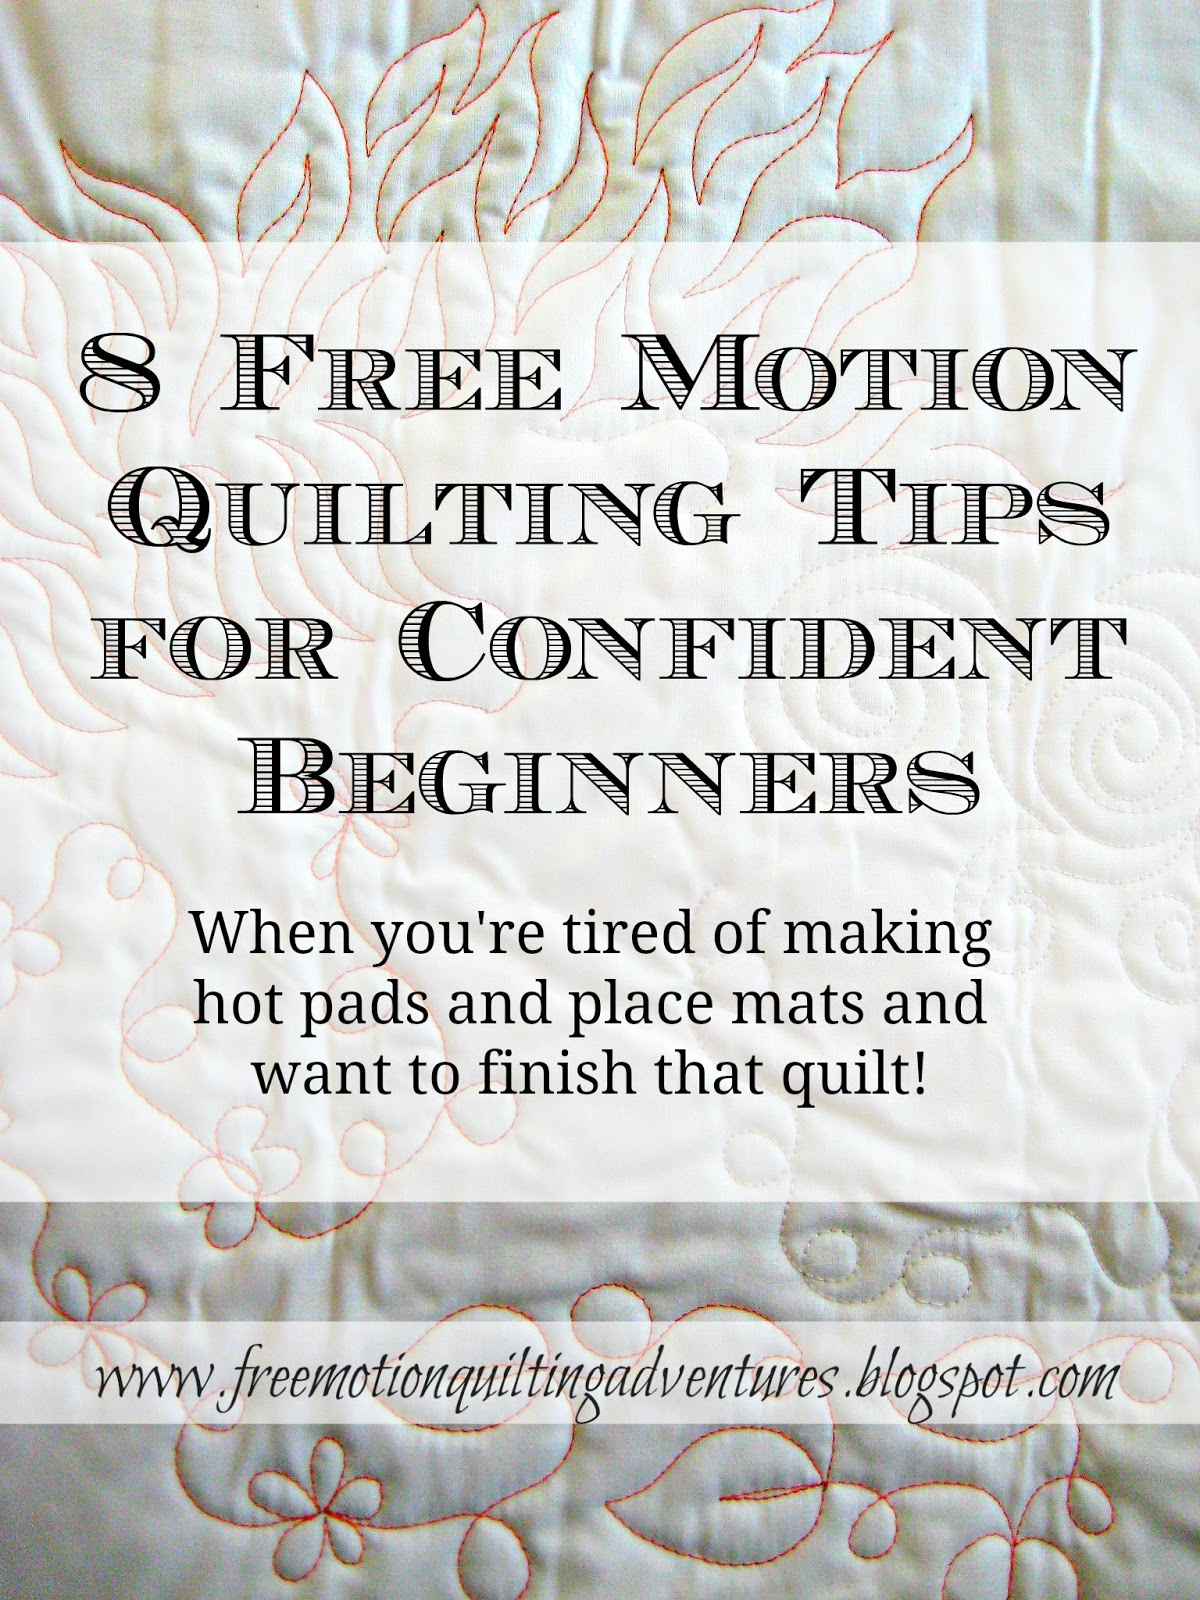 Amy S Free Motion Quilting Adventures 8 Free Motion